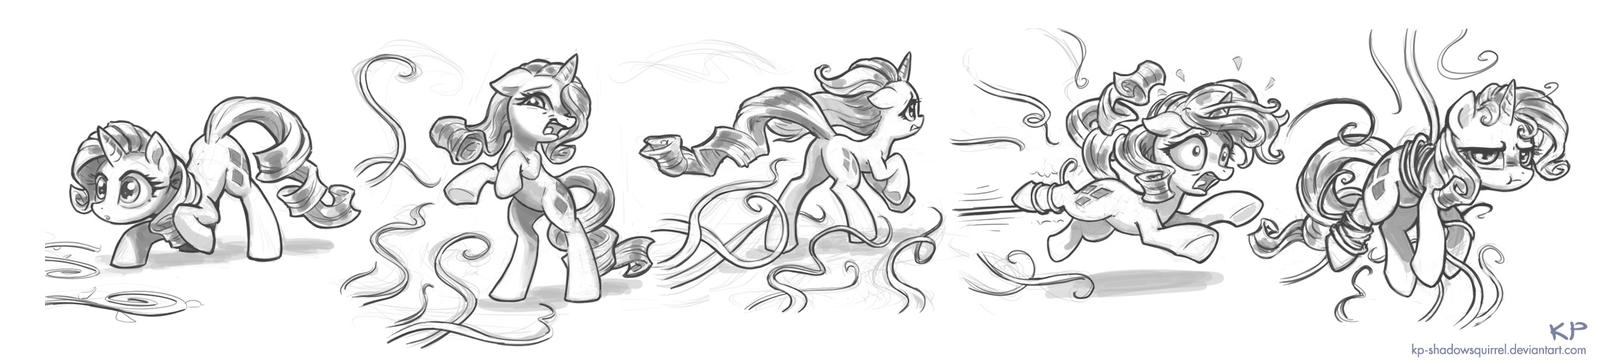 Rarity Sketches #6